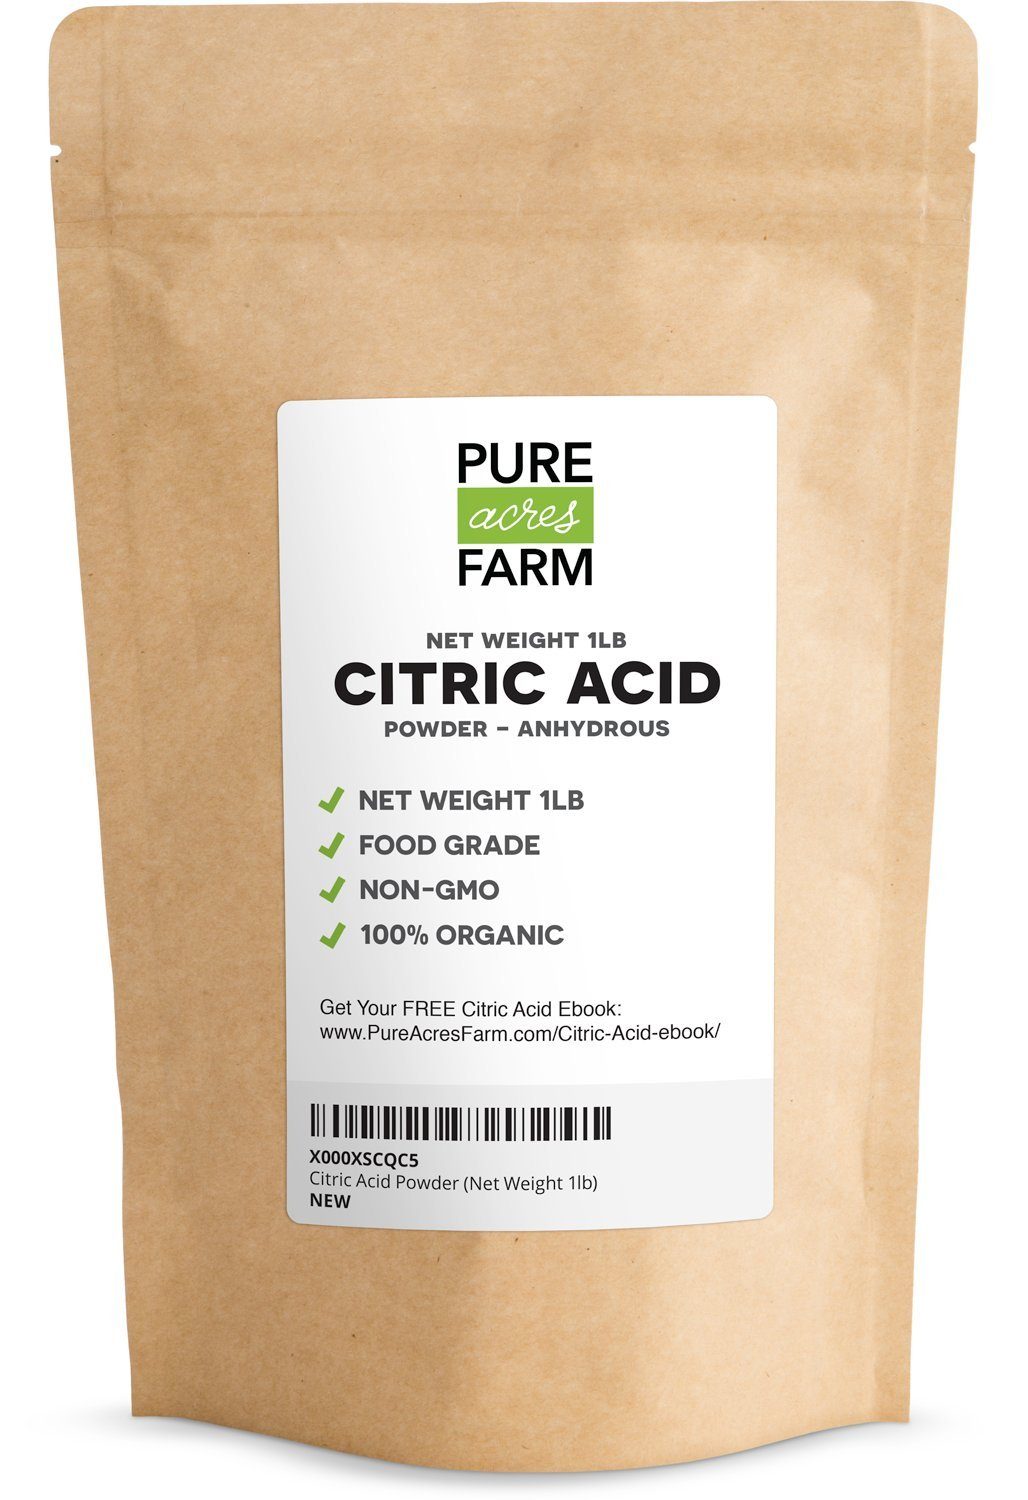 Pure Citric Acid Powder - 1 Pound. Food Grade, Non-GMO, Organic. Great For Bath Bombs, Wine, Home Brew, Or Cleaner